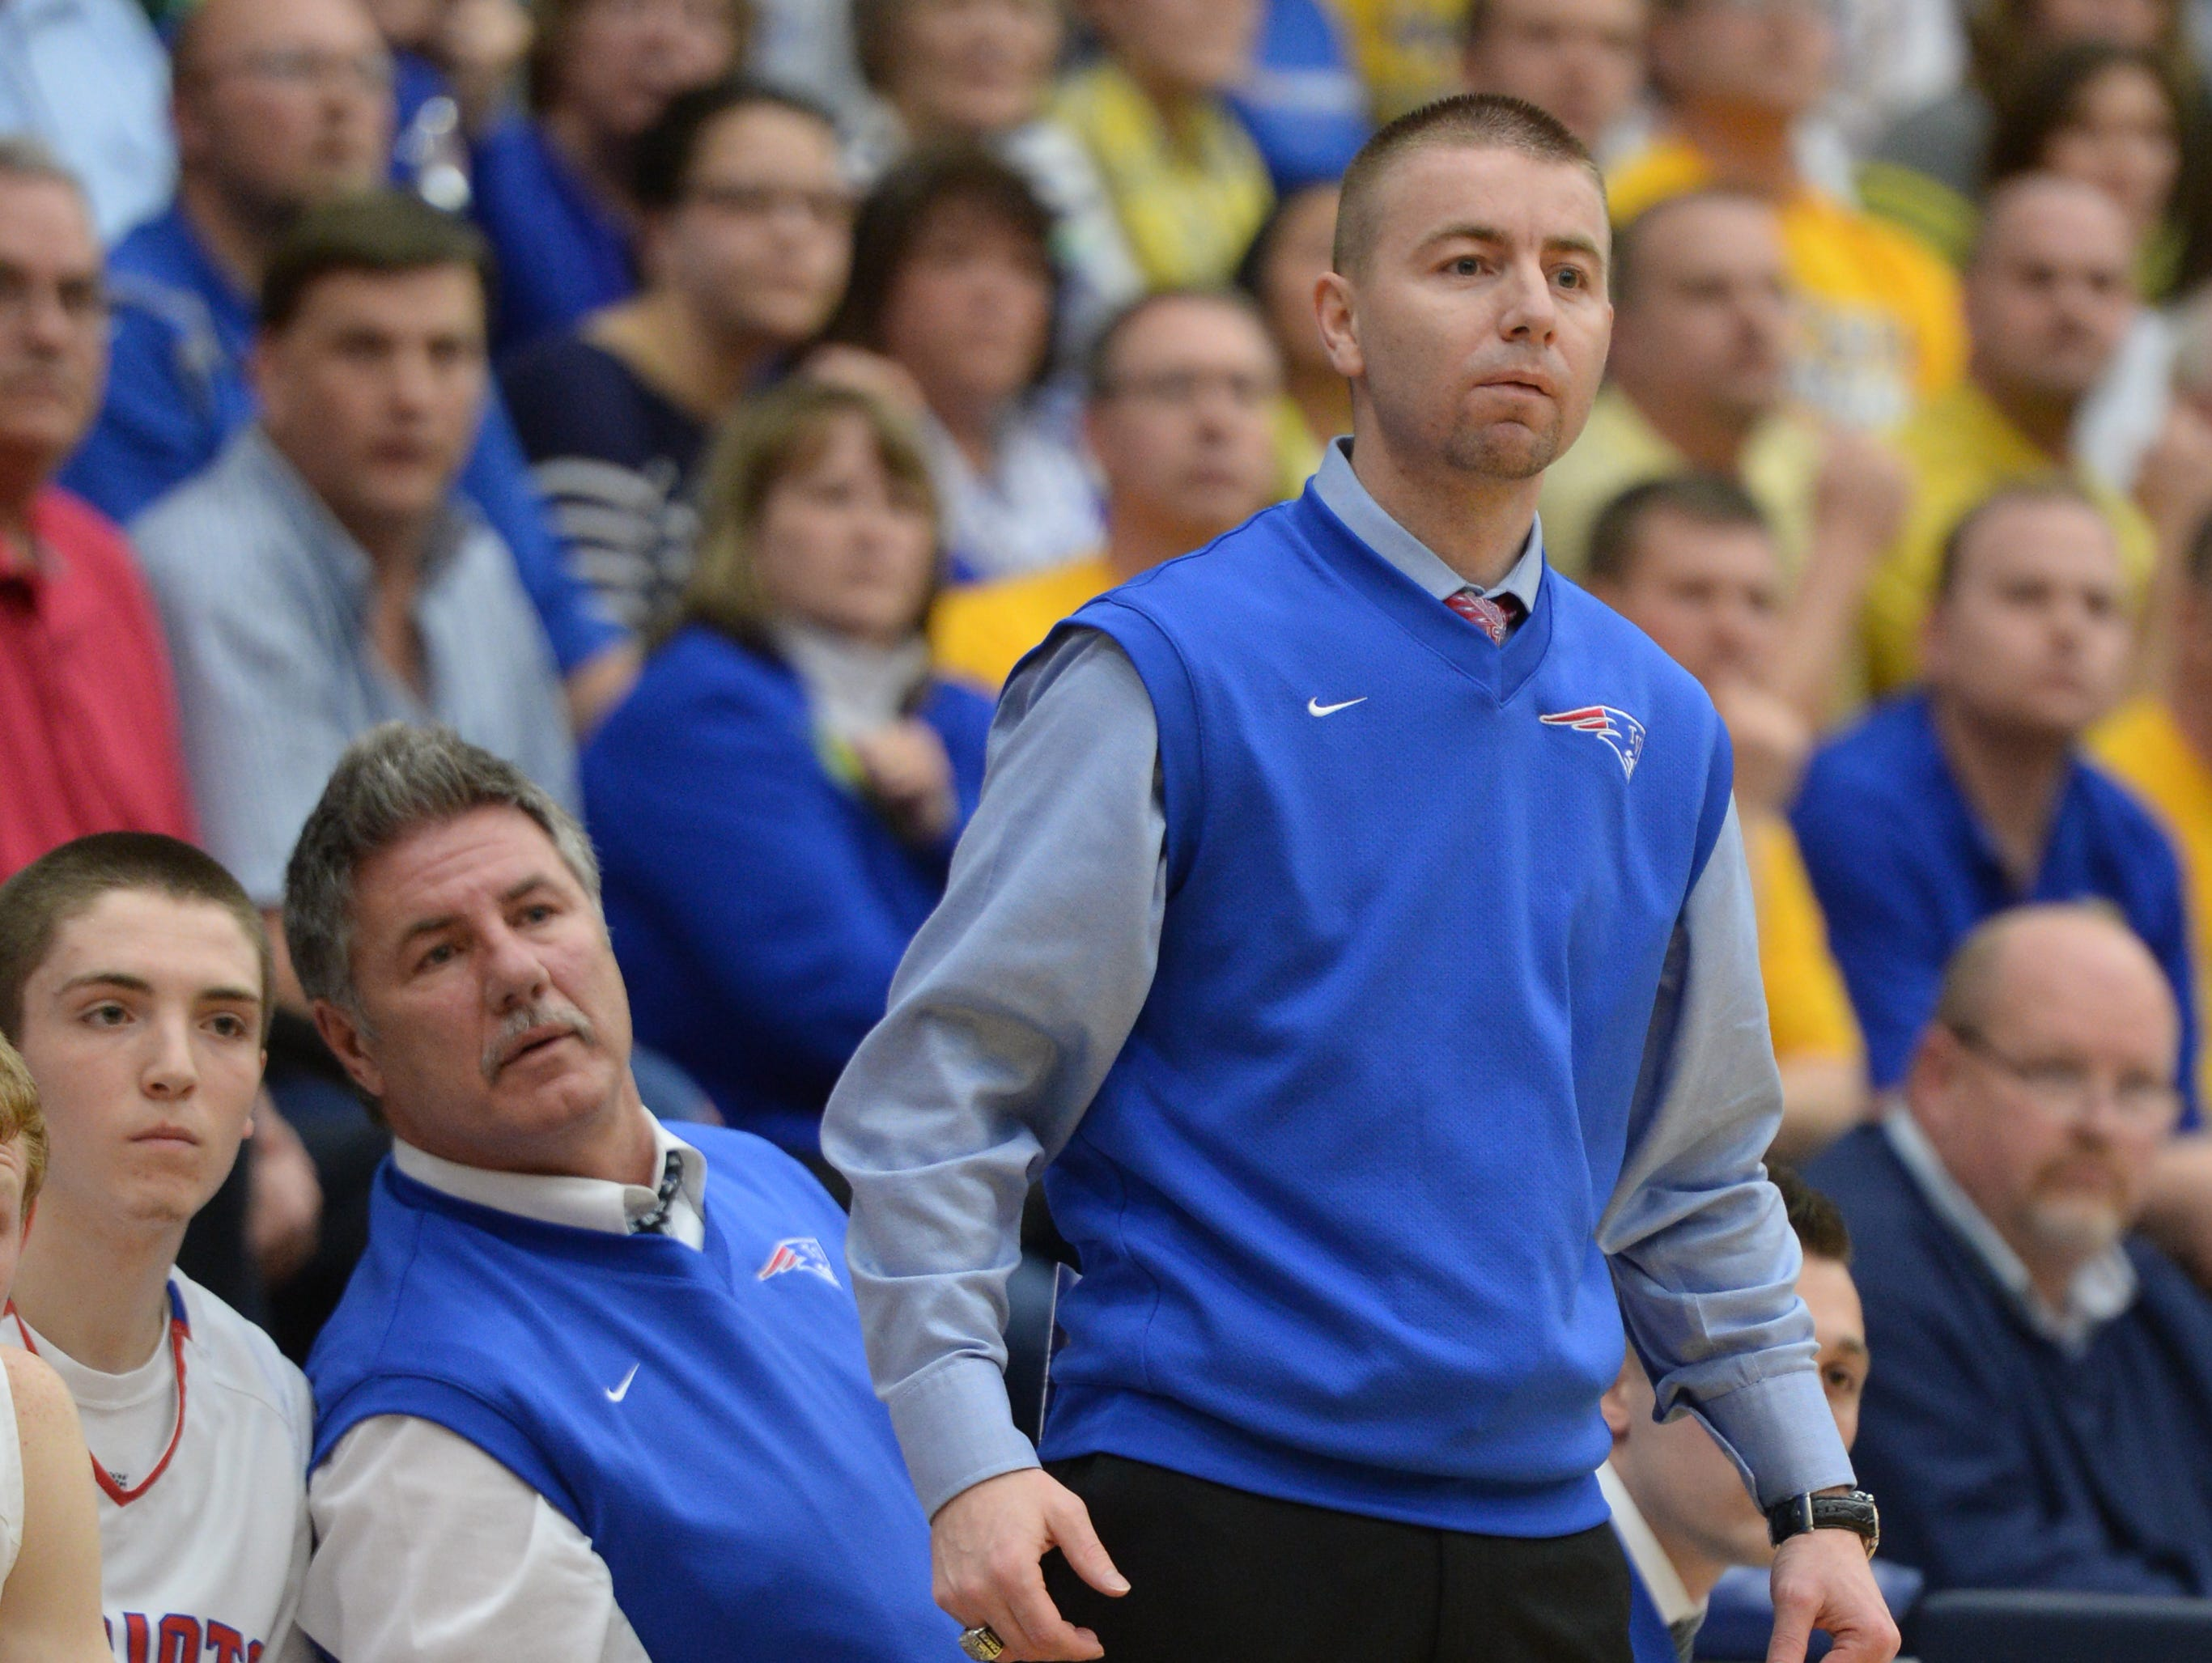 Tri-Village coach Josh Sagester watches a regional basketball game against Russia on March 17 at Kettering Fairmont High School in Ohio.